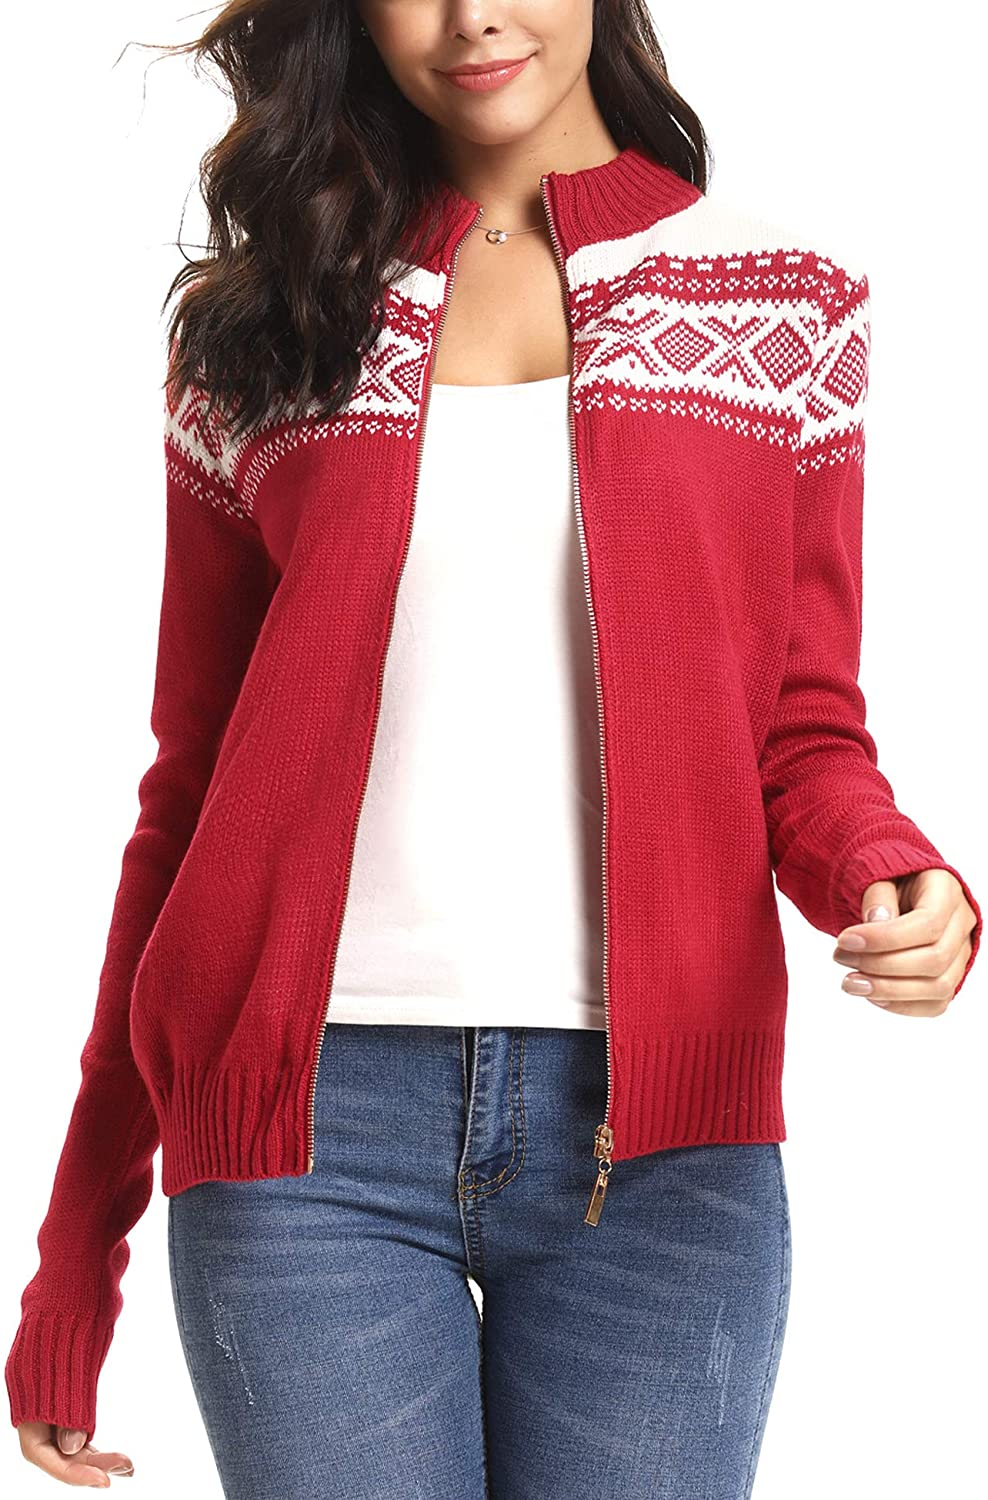 Sykooria Women's Ugly Christmas Knit Sweaters Full Zipper Stand Collar Open Front Xmas Cardigan Sweaters